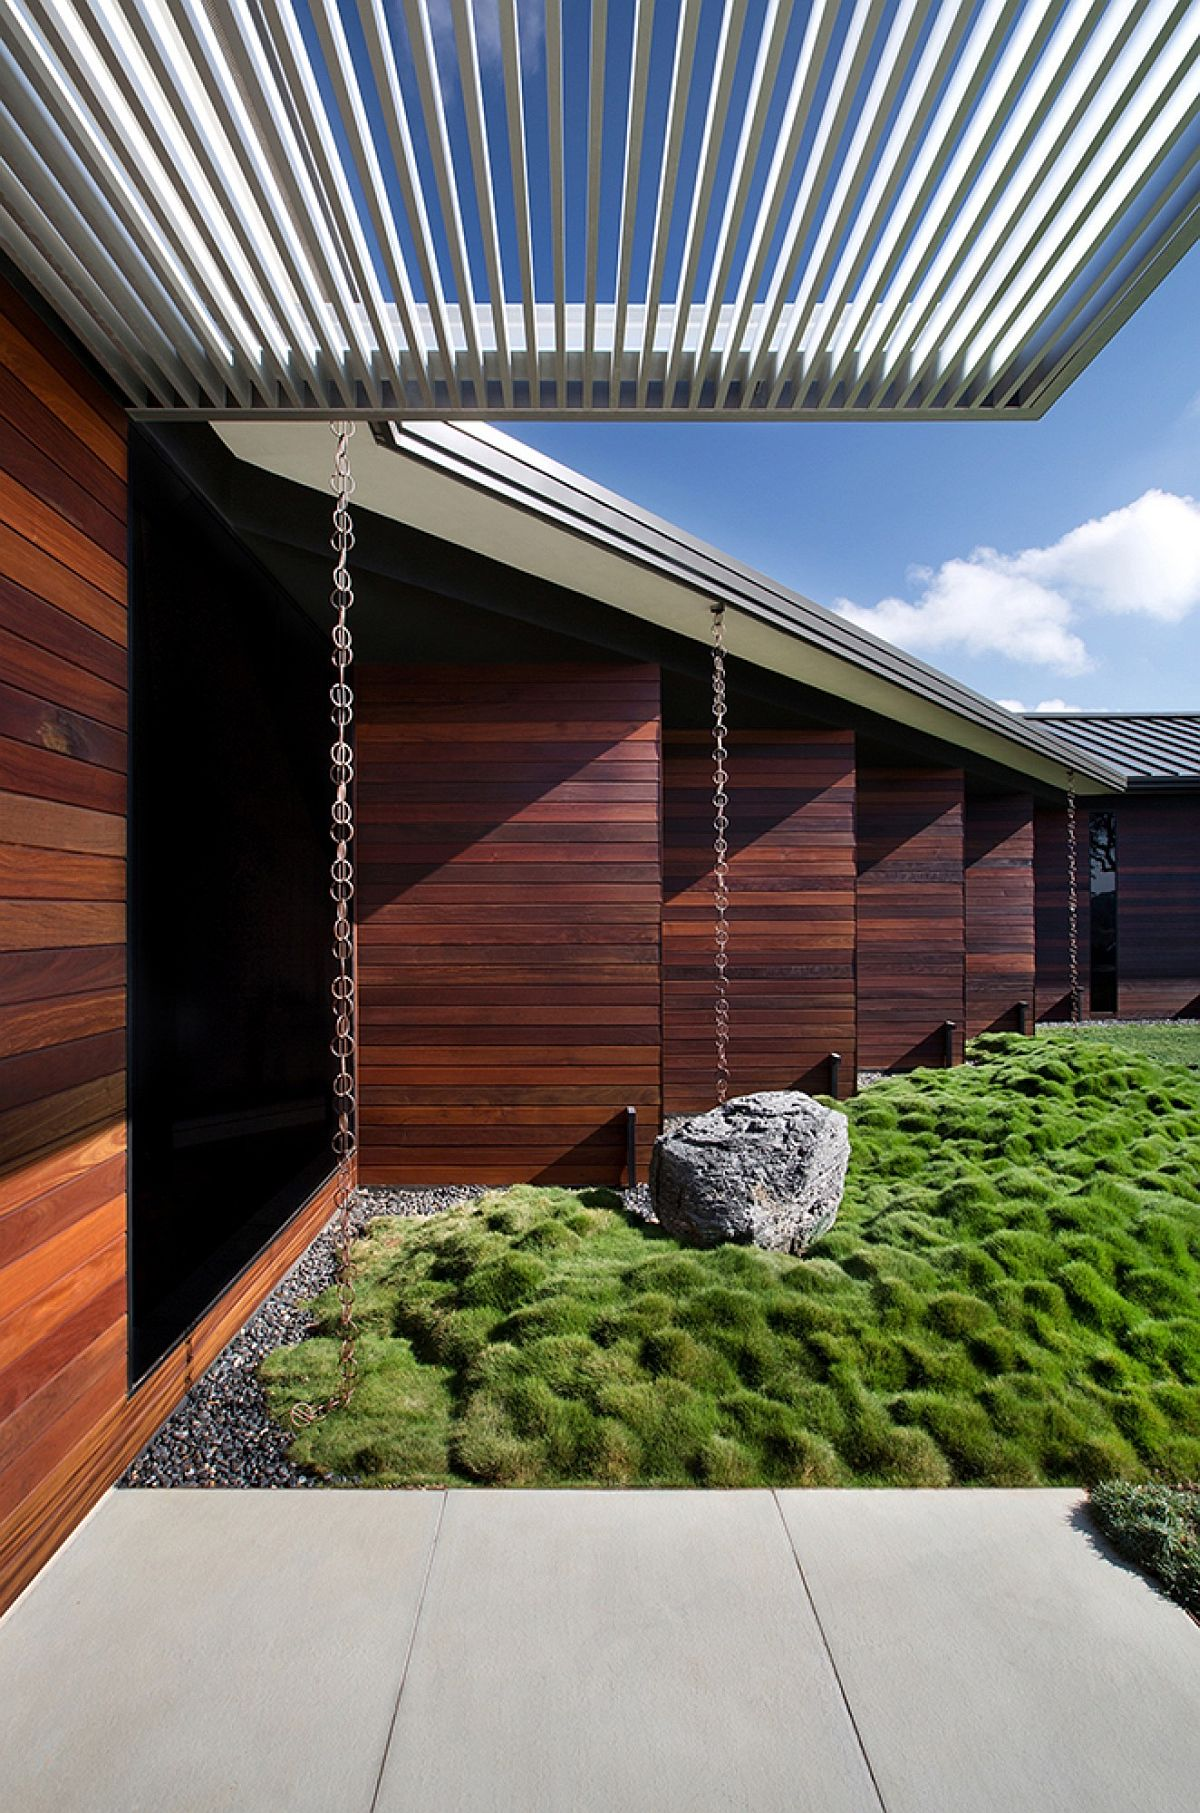 Aluminum overhang, Korean grass and wooden walls give the interior ample visual contrast